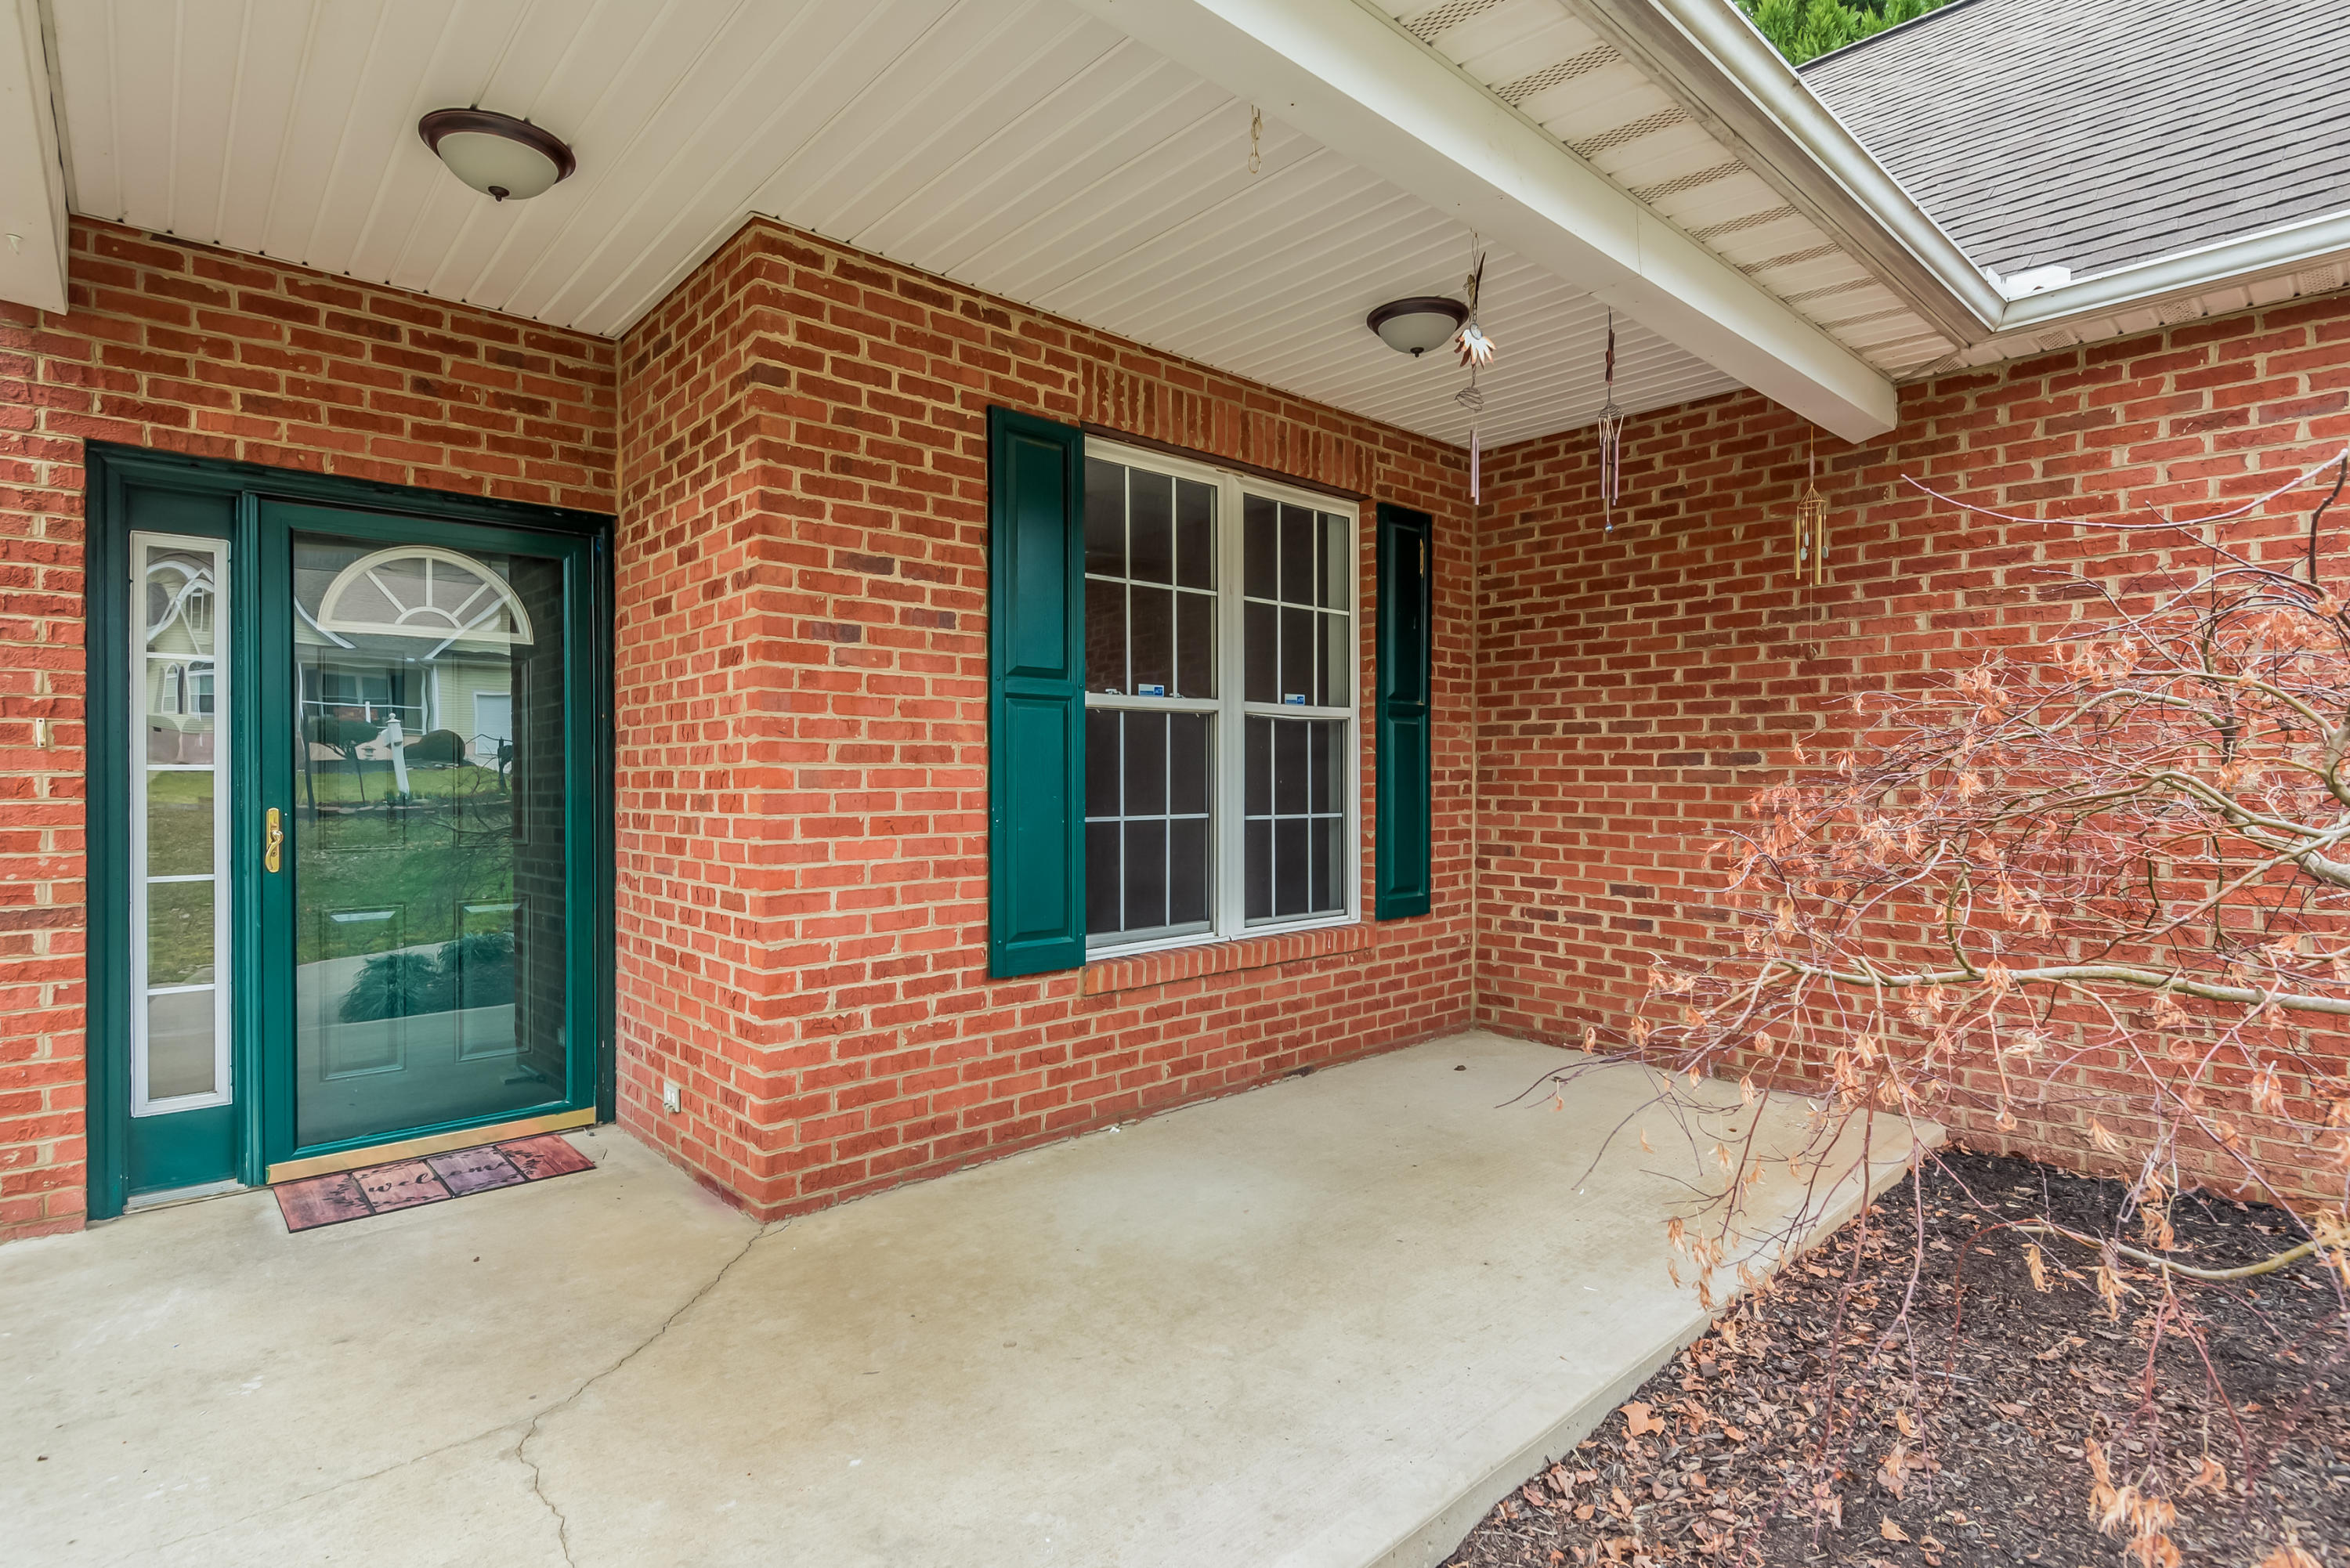 138 Flag Stone Way, Clinton, Tennessee 37716, 4 Bedrooms Bedrooms, ,2 BathroomsBathrooms,Single Family,For Sale,Flag Stone,1069022